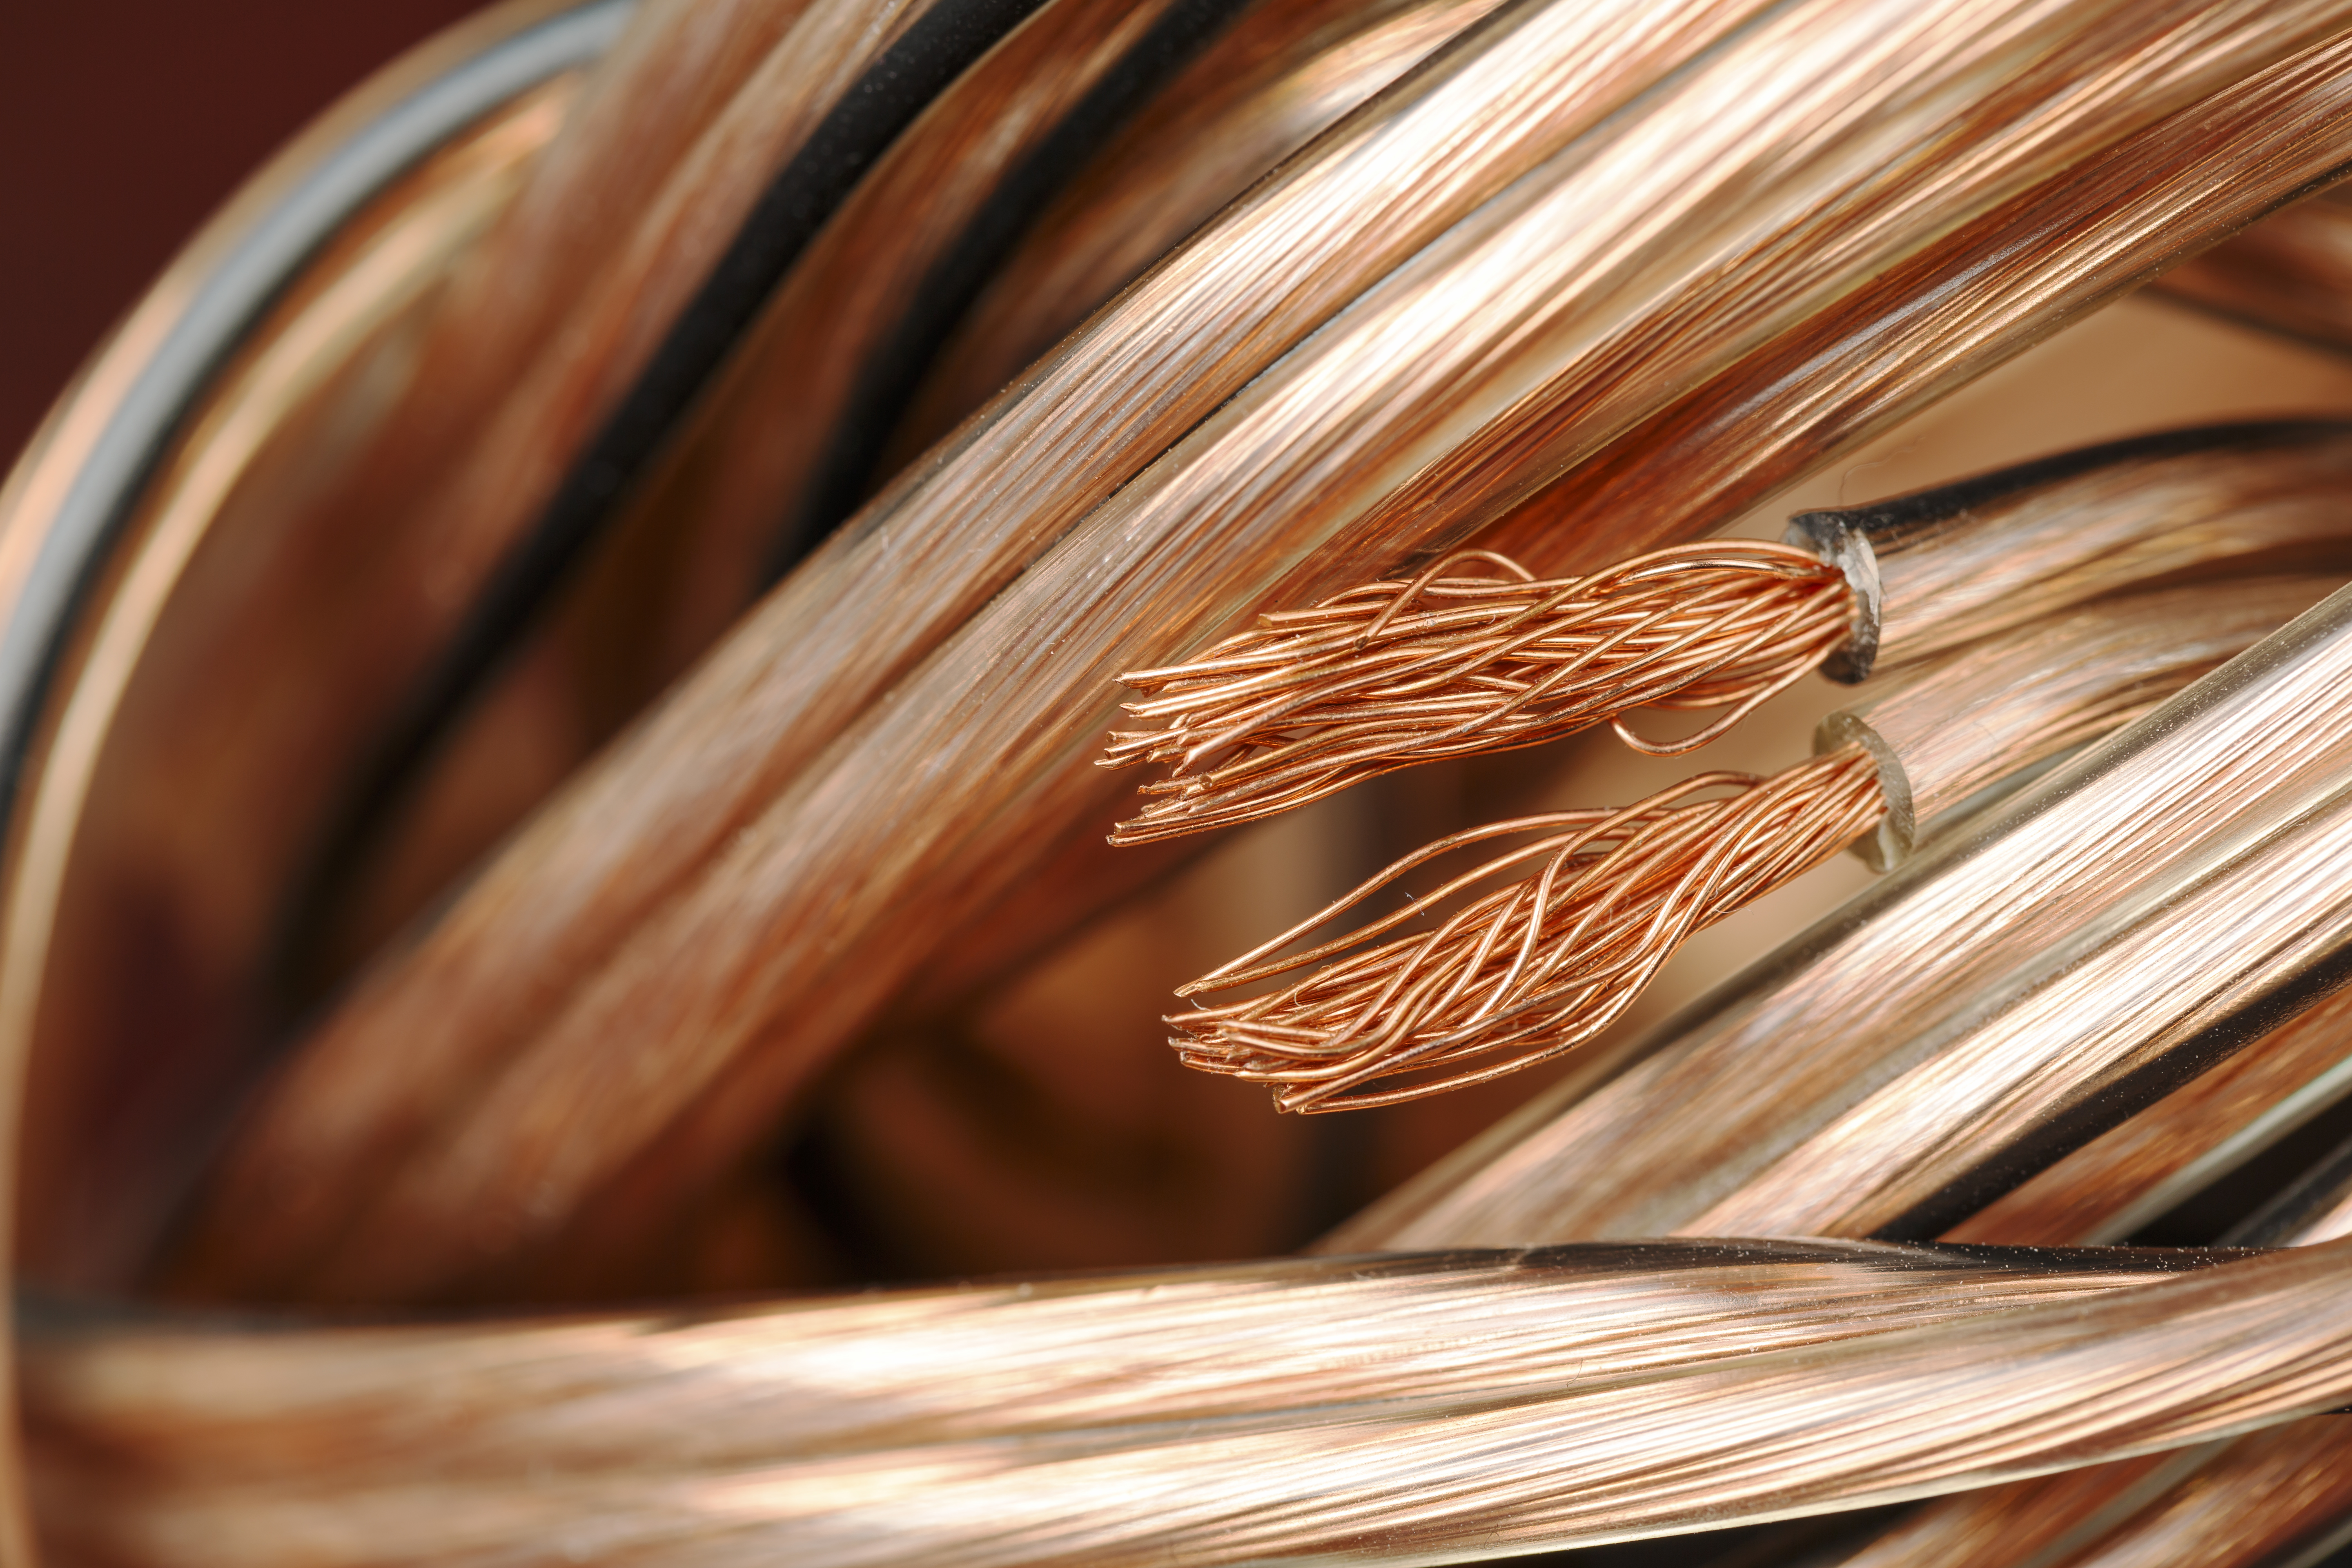 The Disadvantages of Copper Wire | Sciencing on copper enclosures, copper connectors, copper doors, copper ground wire, copper wire loop, copper trim, copper fasteners, copper building, copper electrical wire, copper hardware, copper appliances, copper coins, copper siding, copper design, copper painting, copper cables, copper sheet metal, copper diagram, copper circuit board, copper socket,